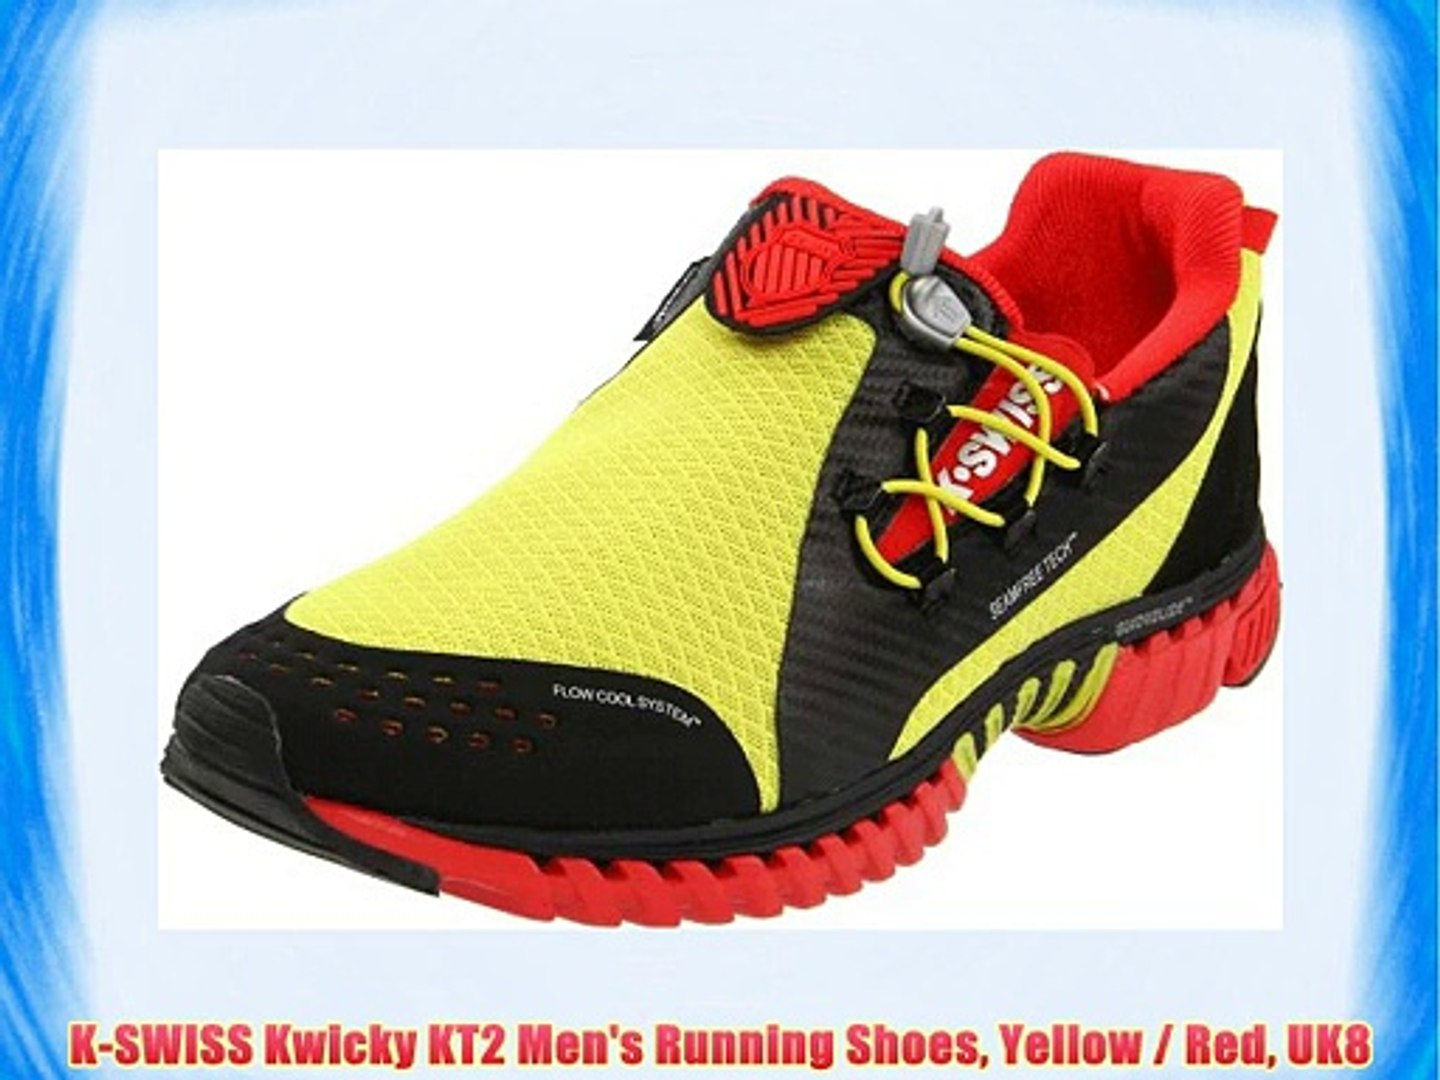 K-SWISS Kwicky KT2 Men's Running Shoes Yellow / Red UK8